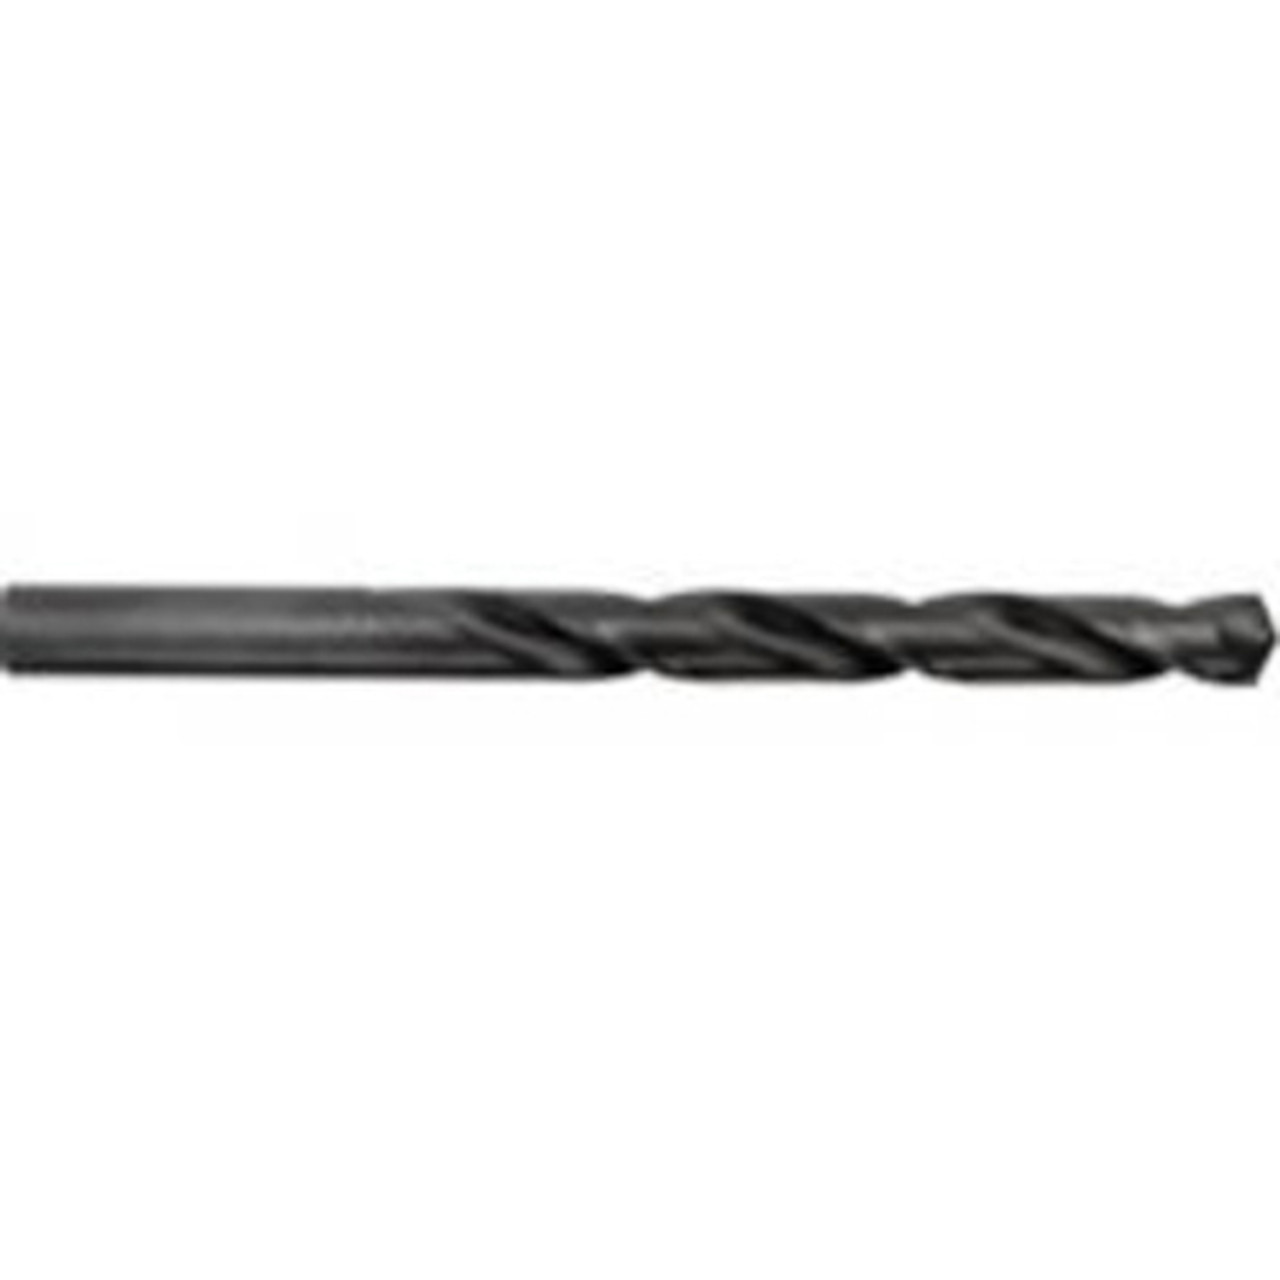 "Irwin 62322 11//32/"" Black Oxide 135 Degree-Jobber Length Left Handed Drill Bit"